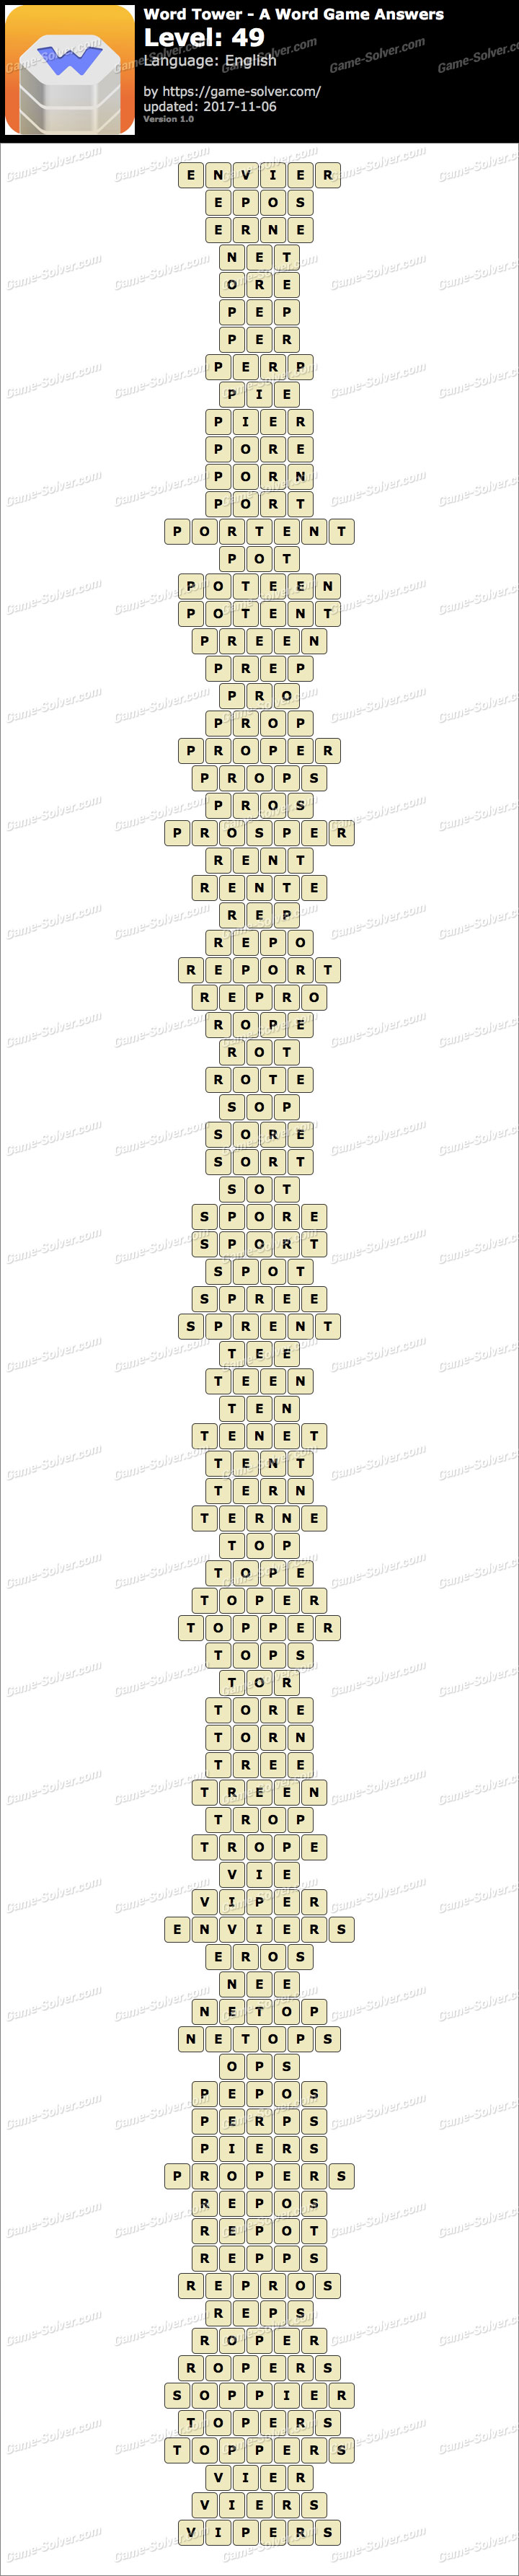 Word Tower Level 49 Answers